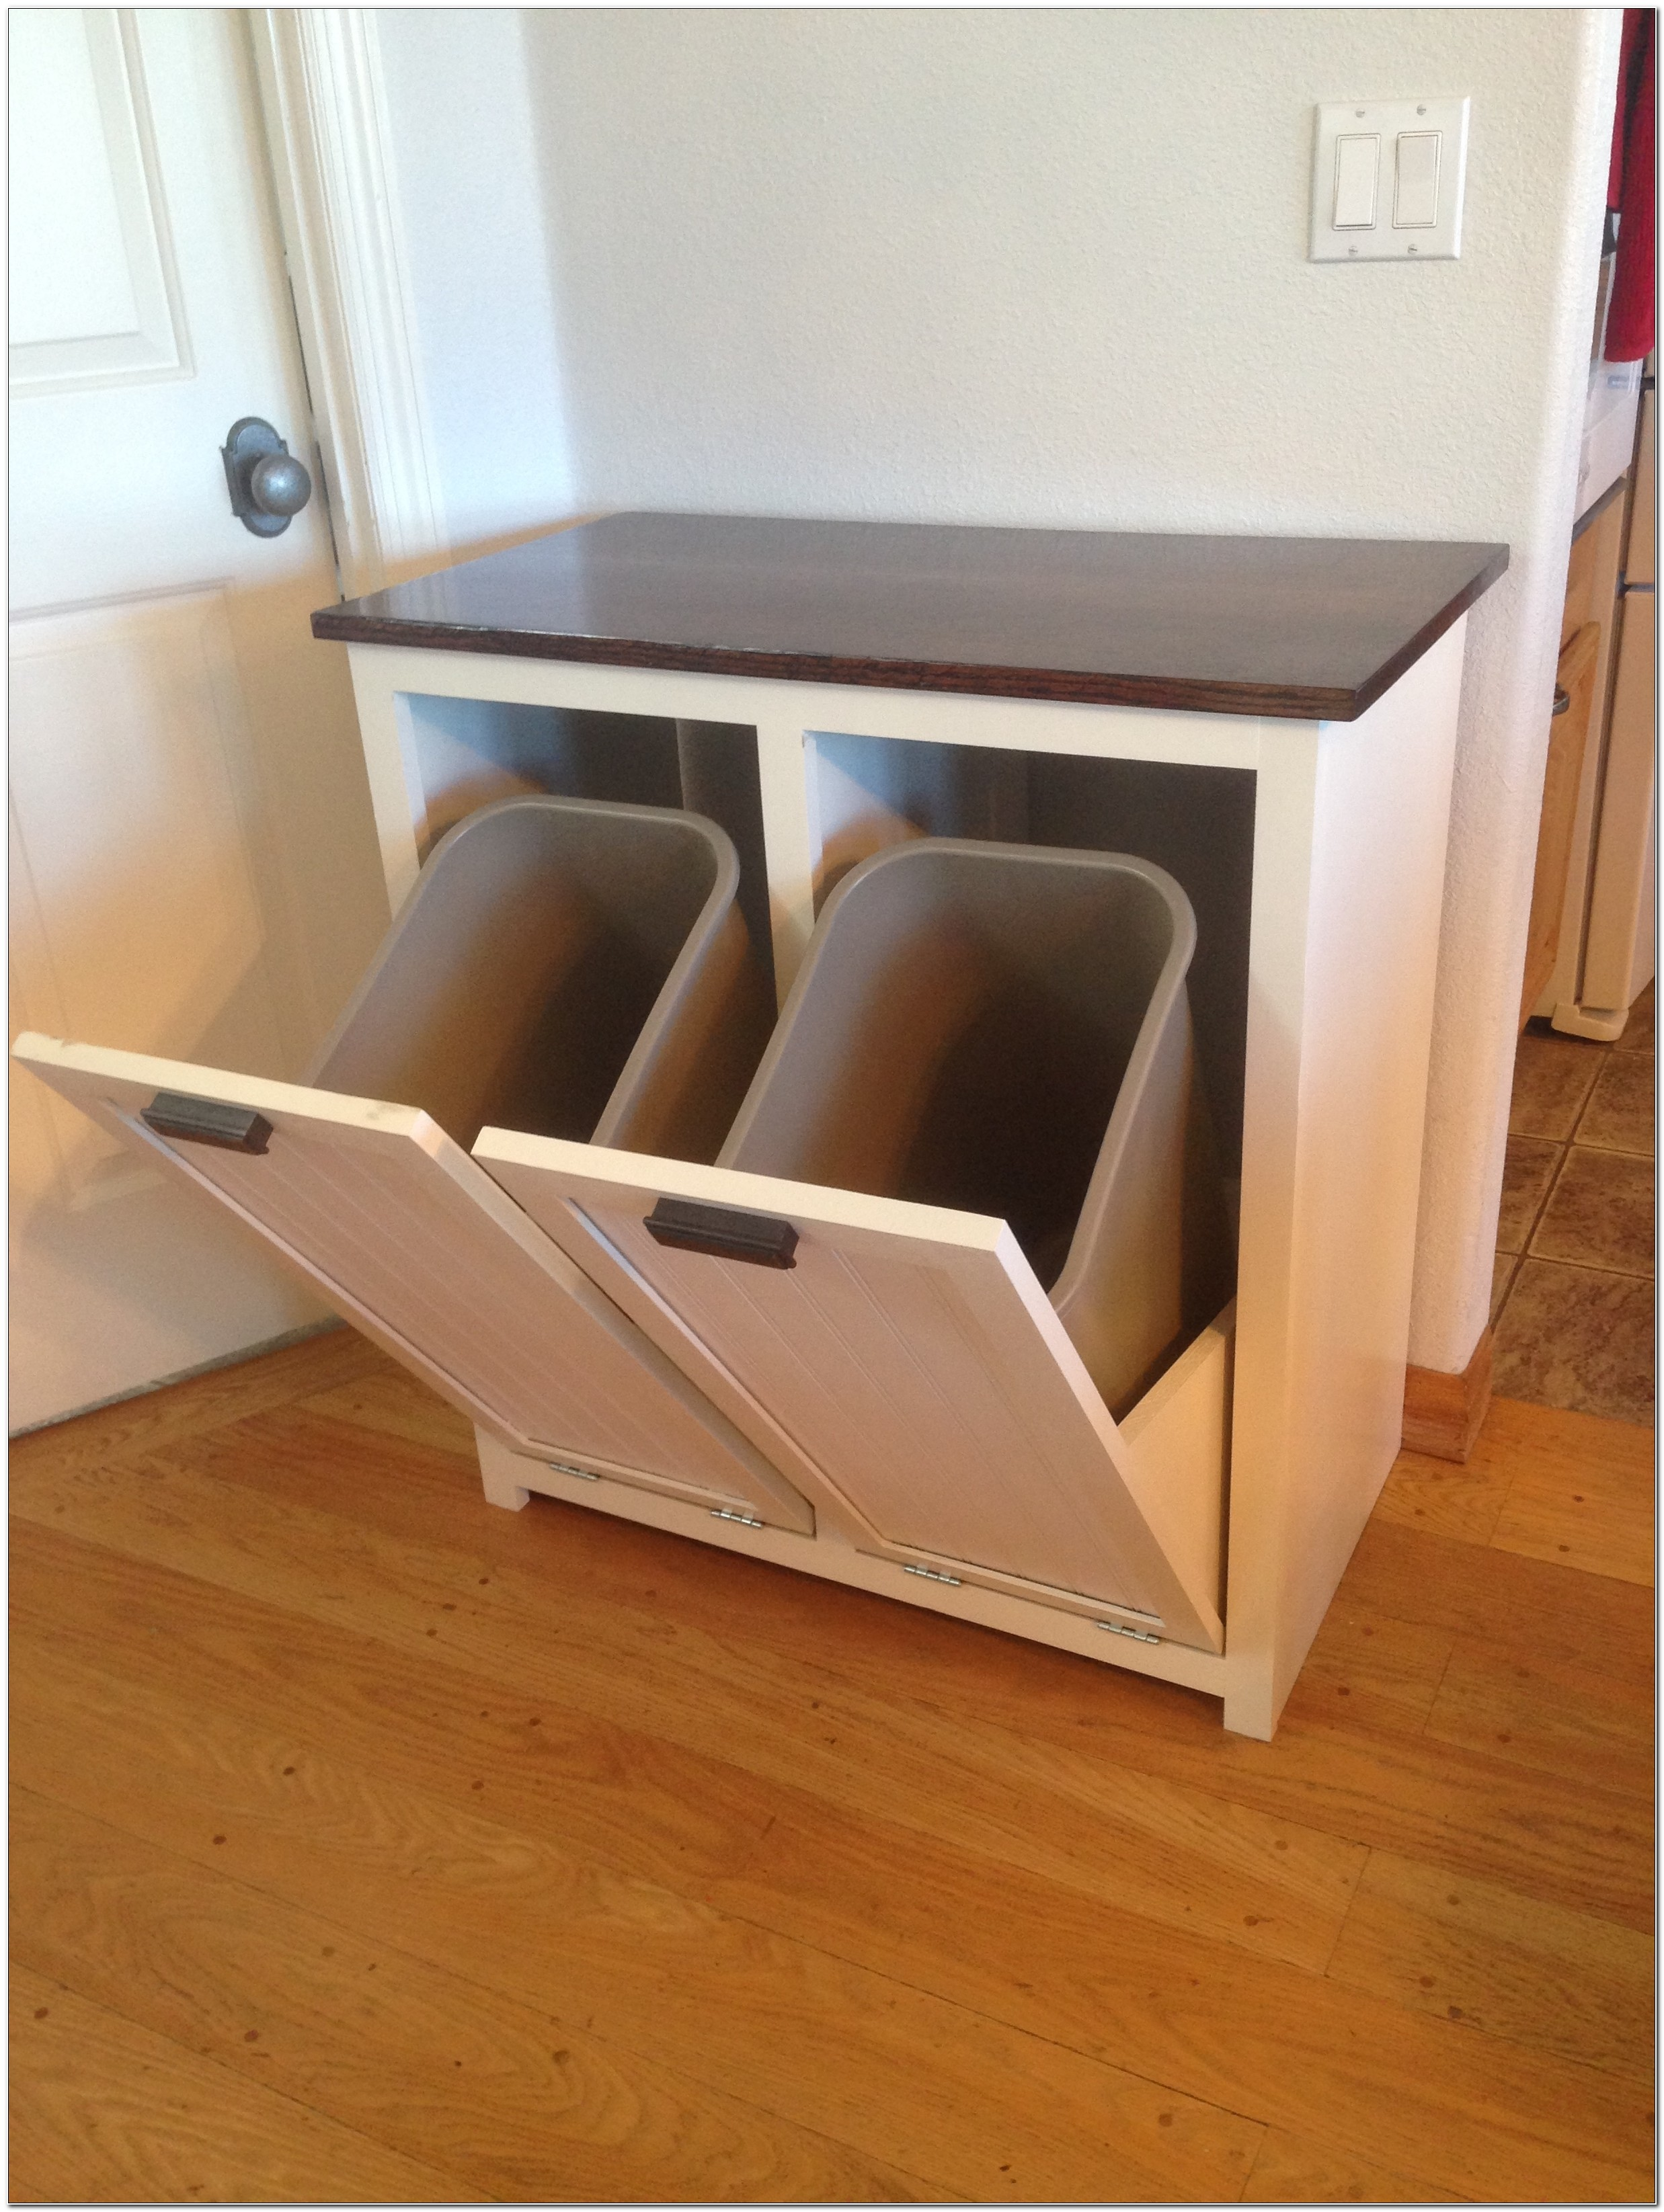 Tilt Out Trash And Recycling Cabinet